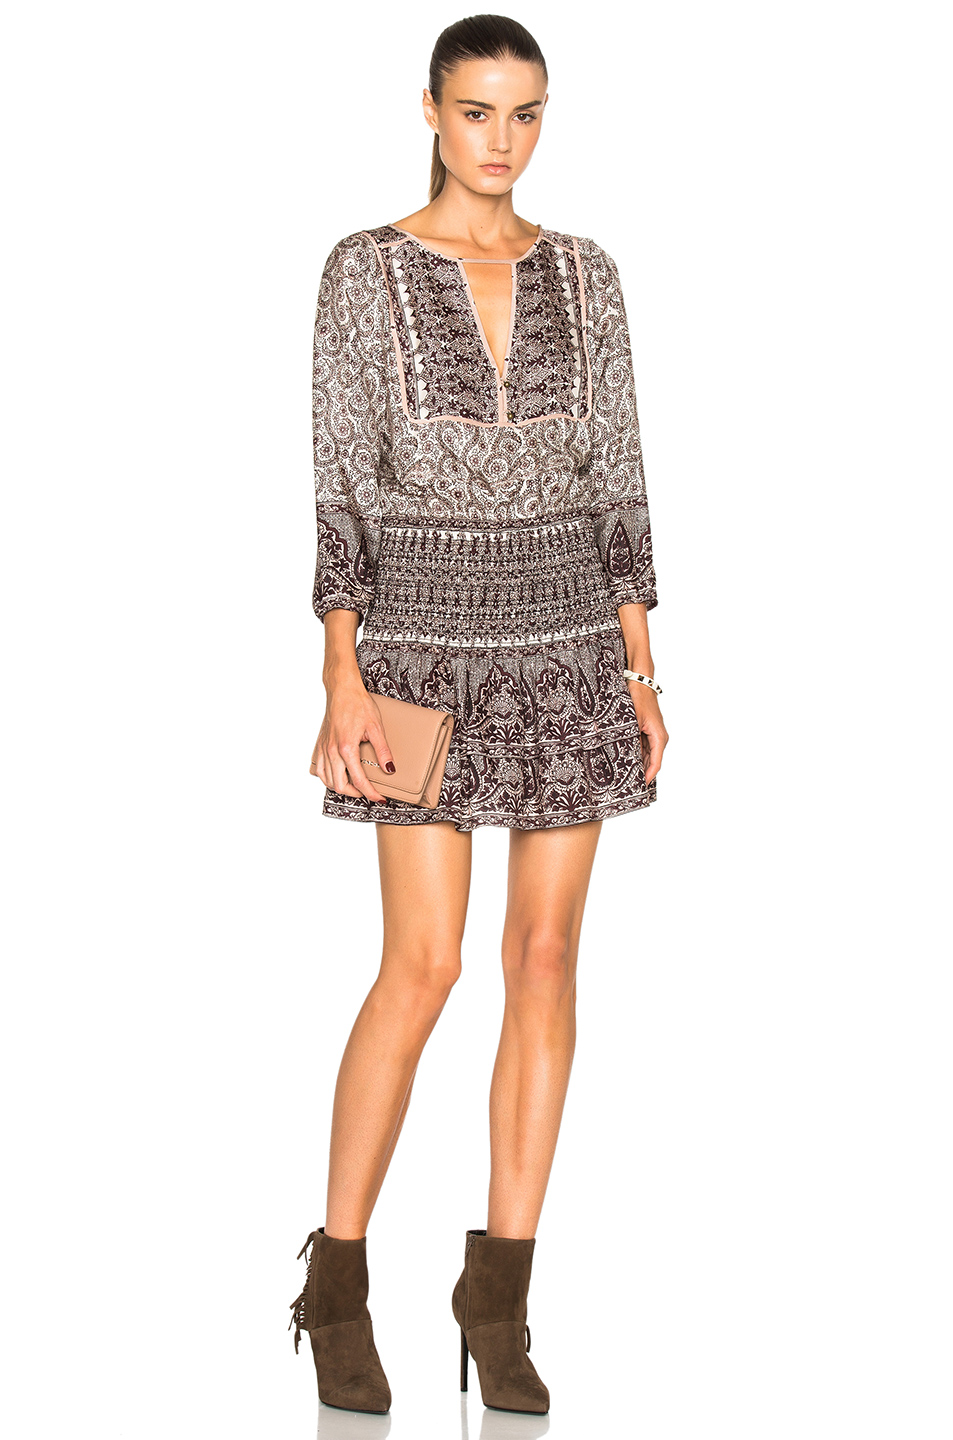 Veronica Beard Makai Boho Dress in Neutrals,Floral,Brown